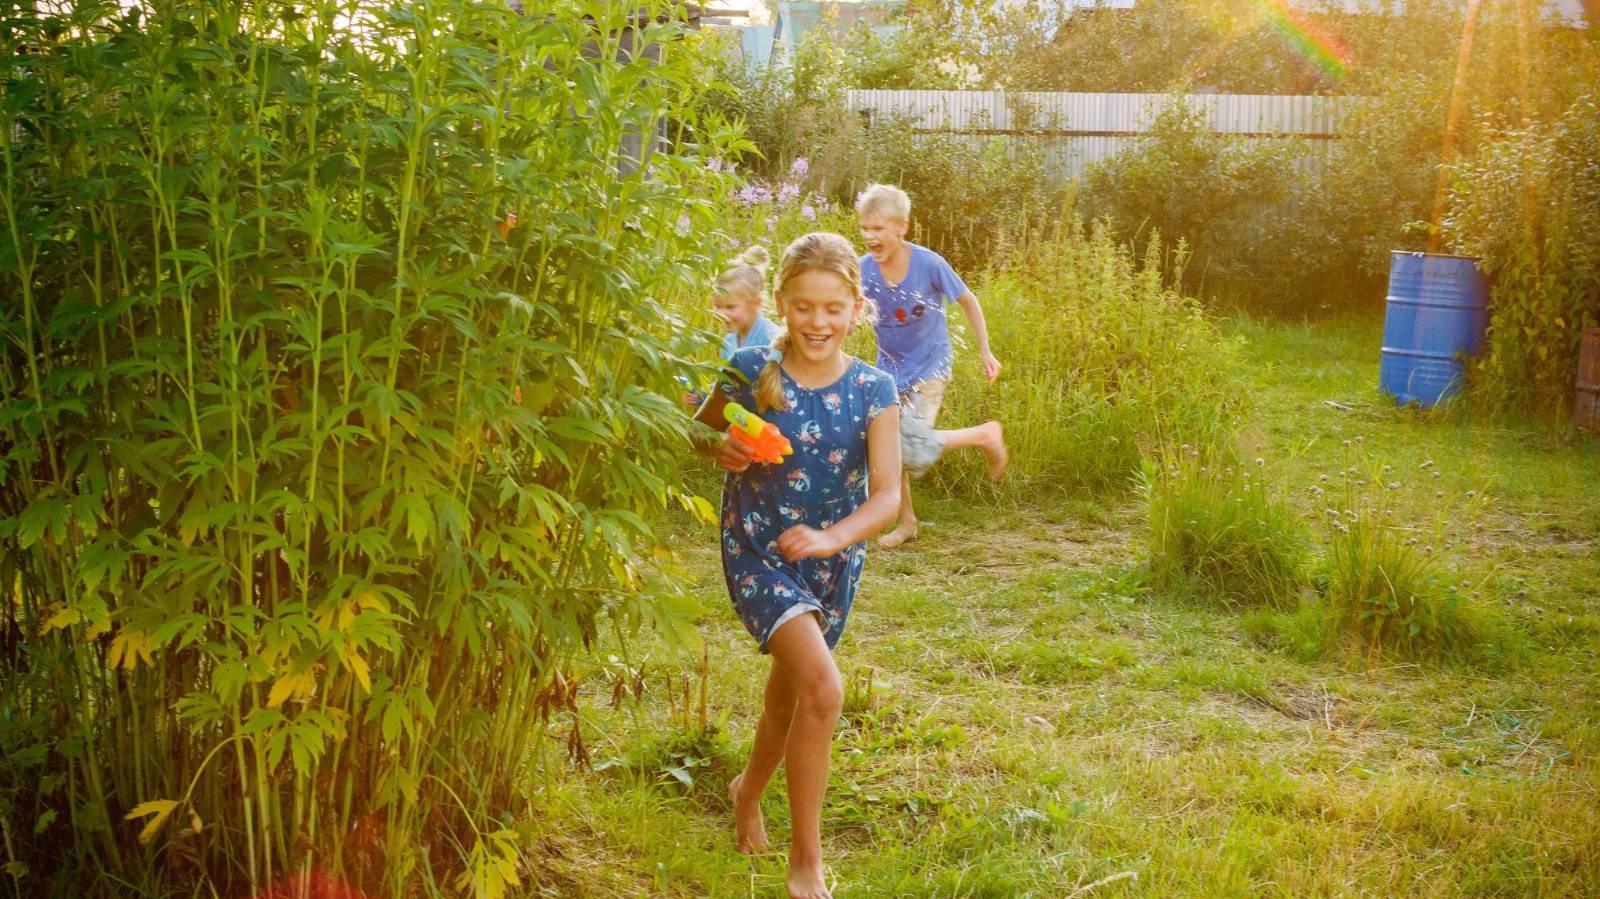 Five simple ways to raise kind and compassionate kids